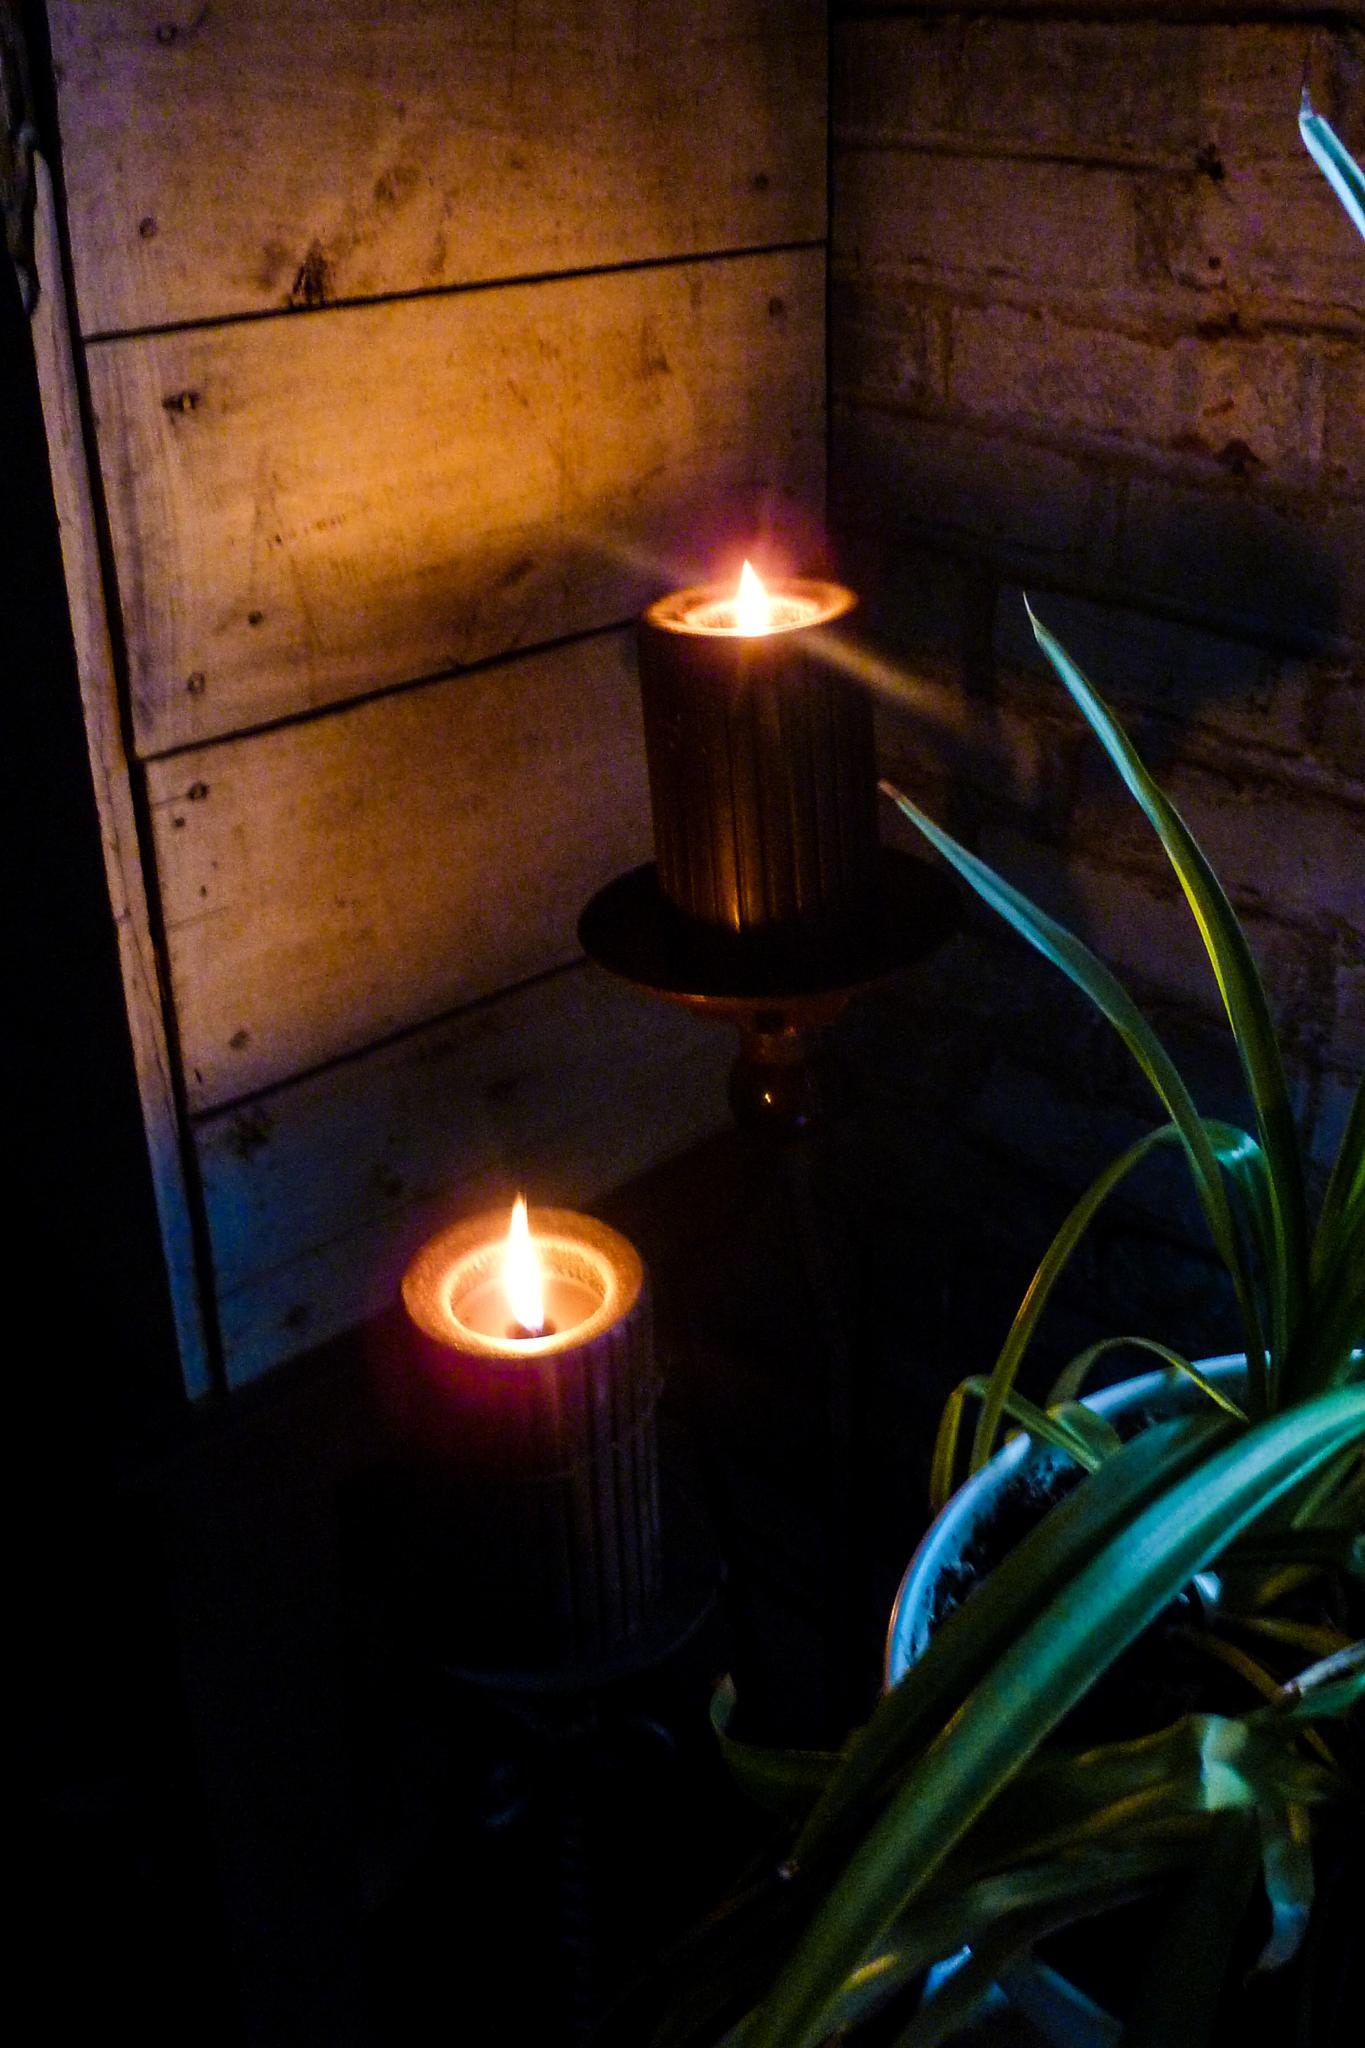 Candles by Cait Templeton